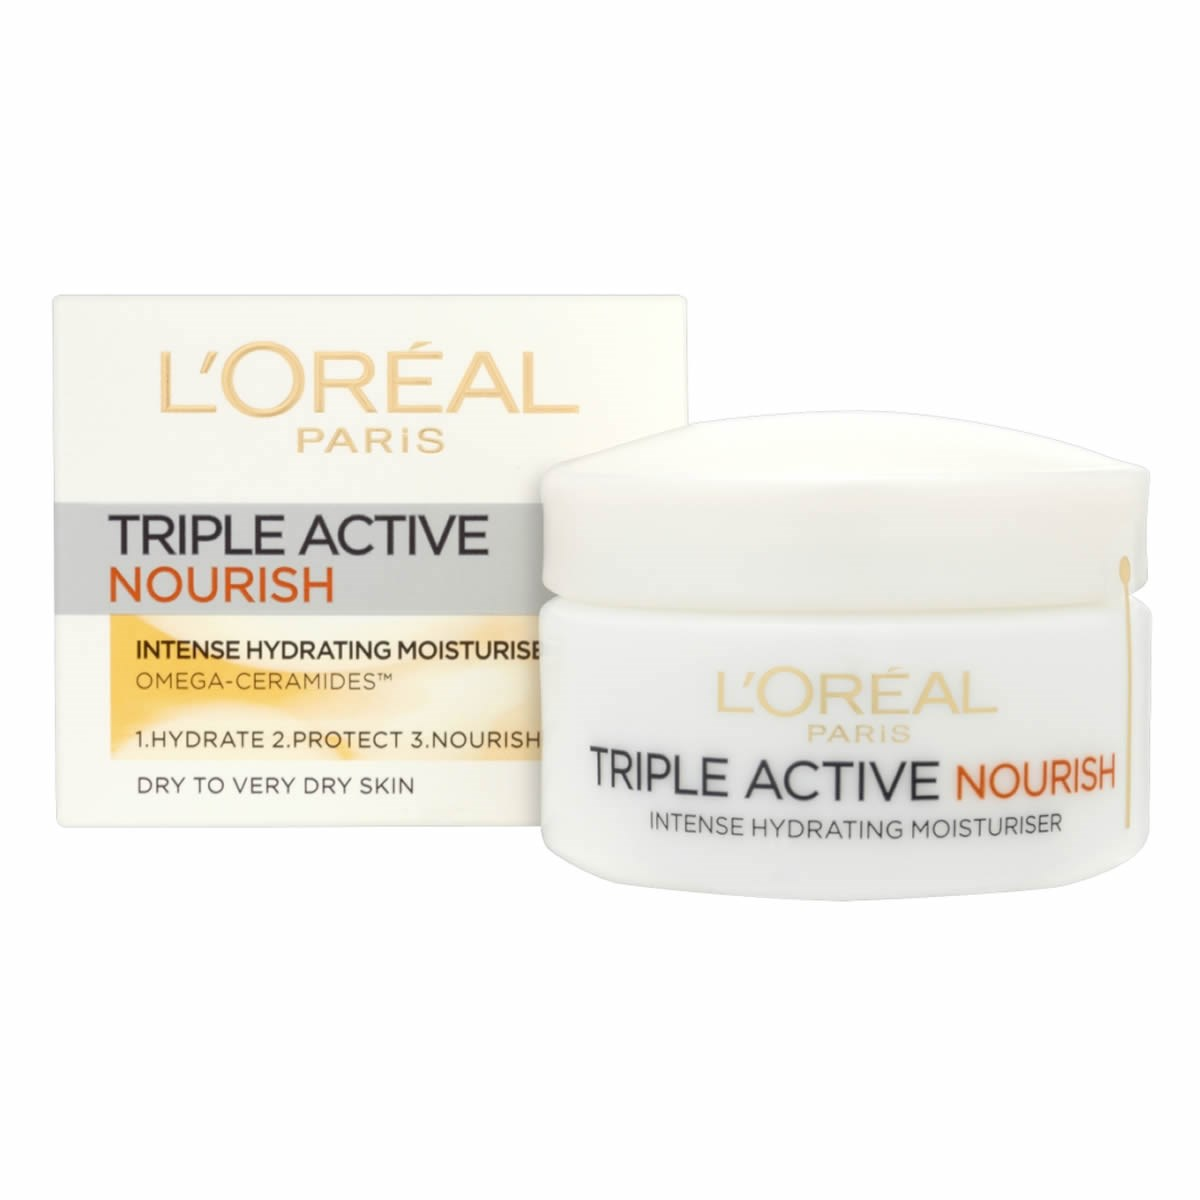 L'Oreal Paris Triple Active Nourish Moisturiser - Dry to Very Dry Skin